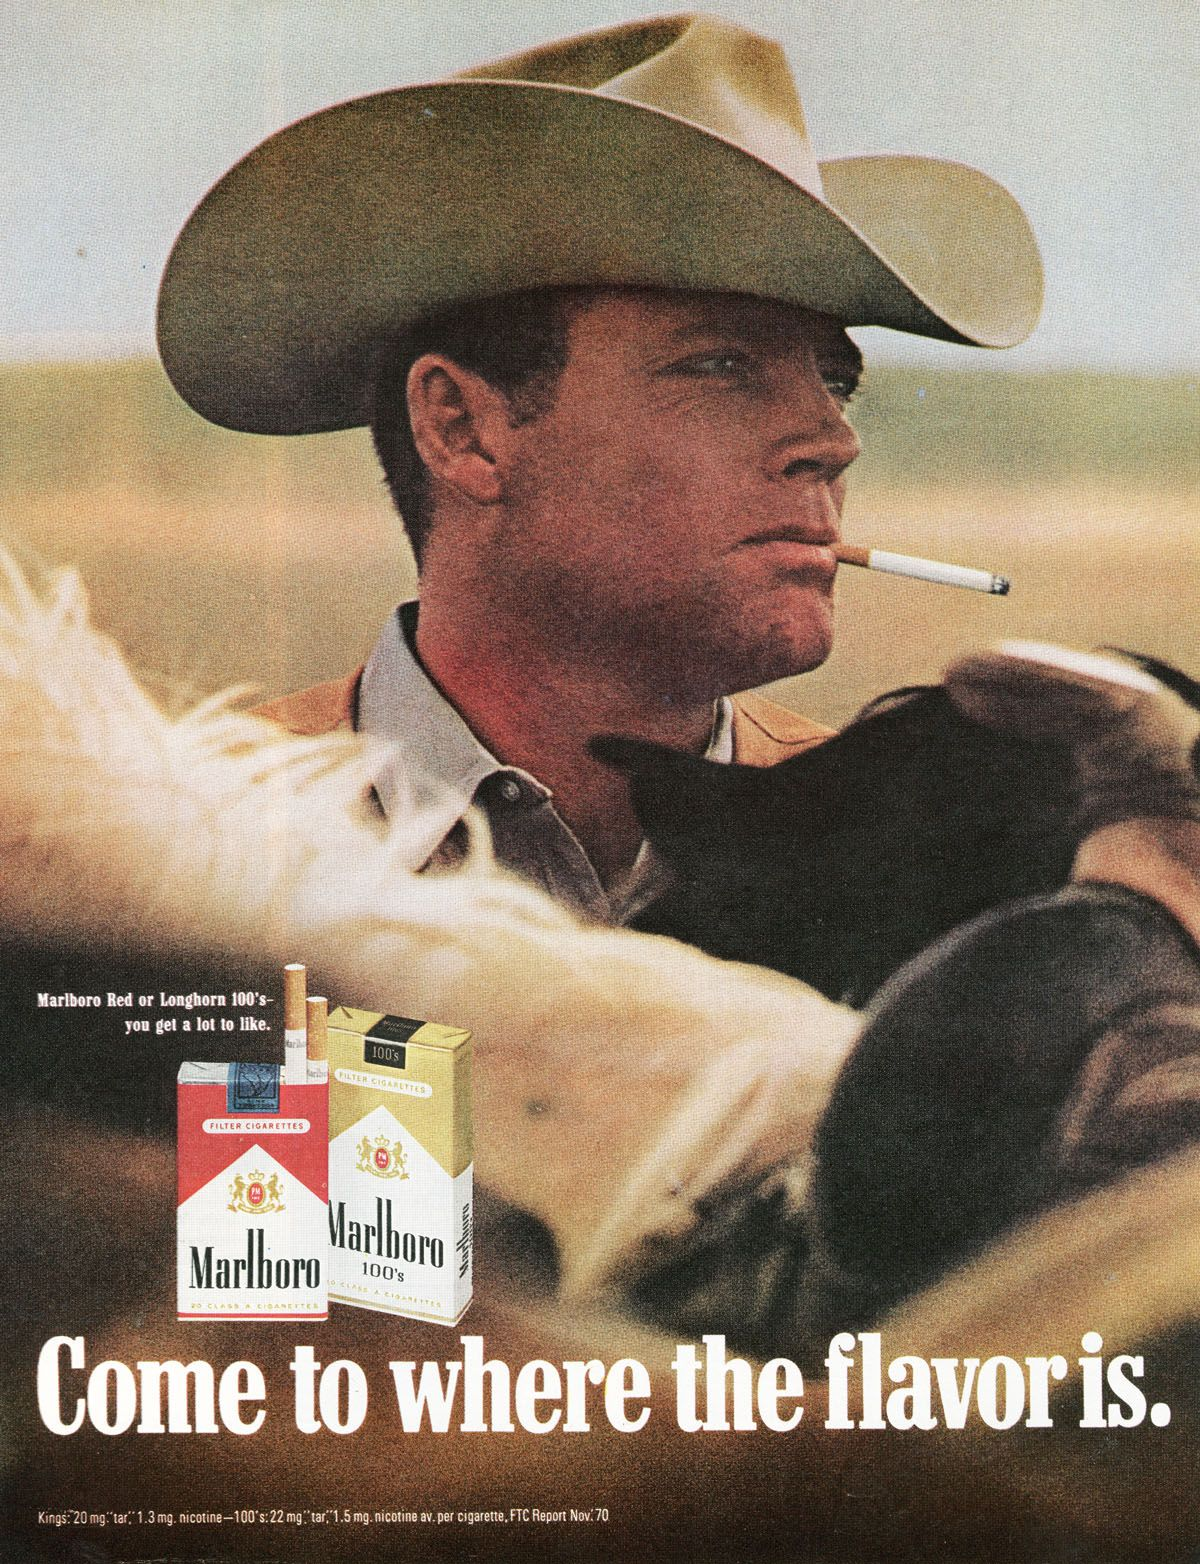 1970 Marlboro - Come to where the flavor is | Digital Poster Collection